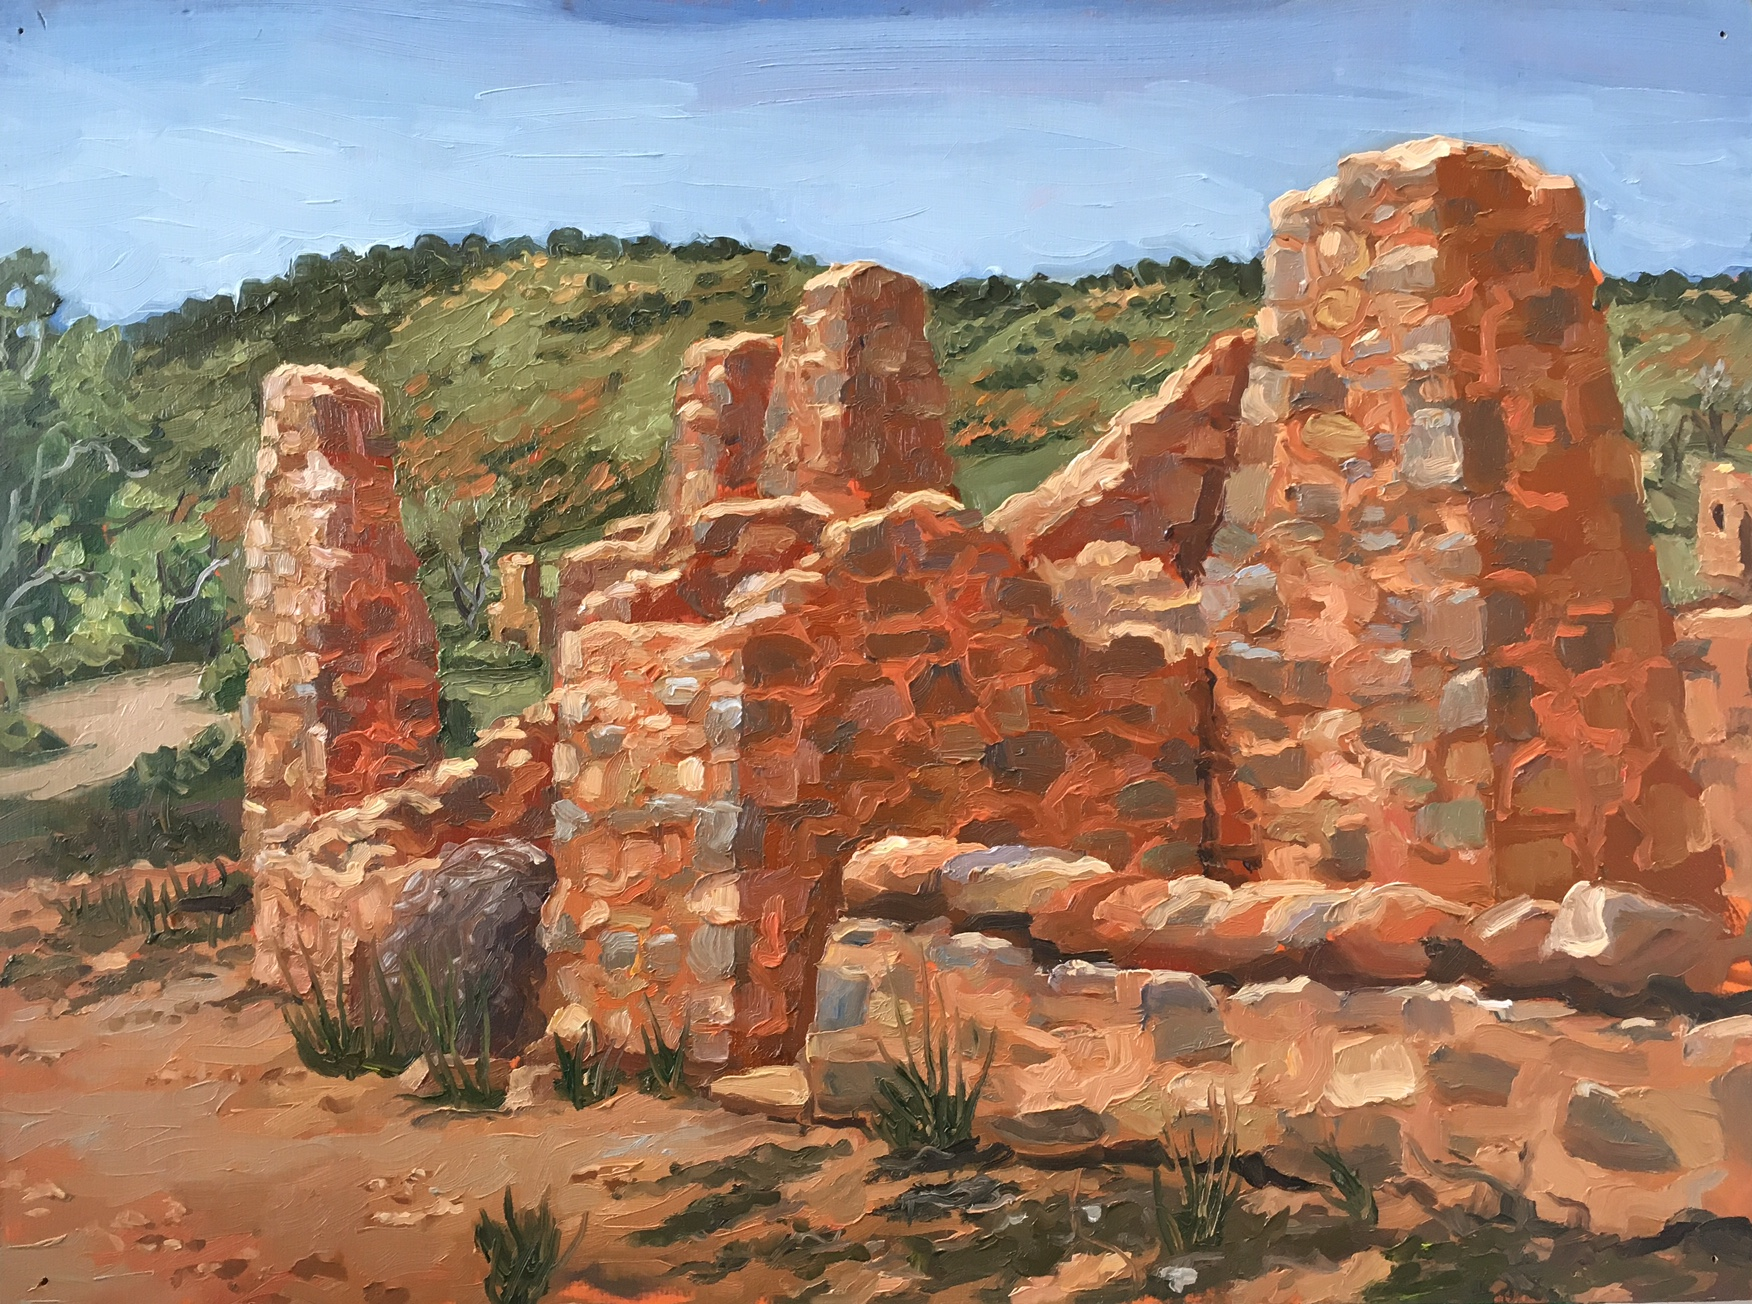 Kanyaka Homestead, Oil on panel, 30 x 40cm, 2013.